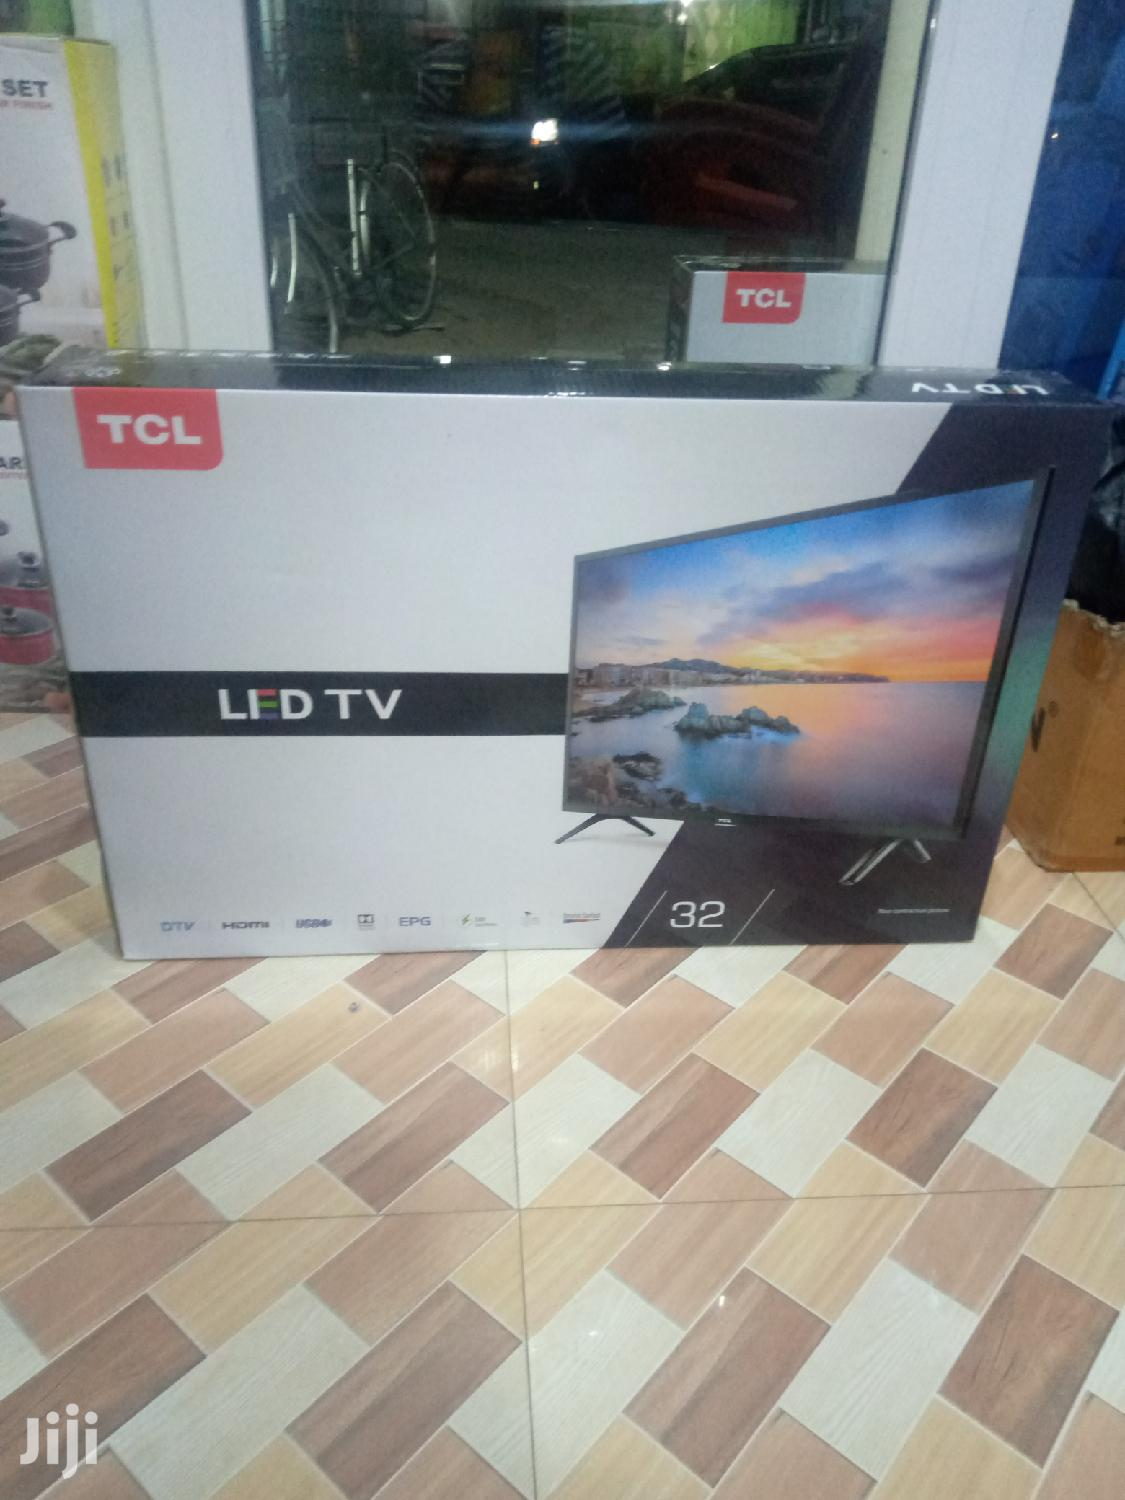 TCL Digital Satellite LED Tv-32 | TV & DVD Equipment for sale in Teshie new Town, Greater Accra, Ghana